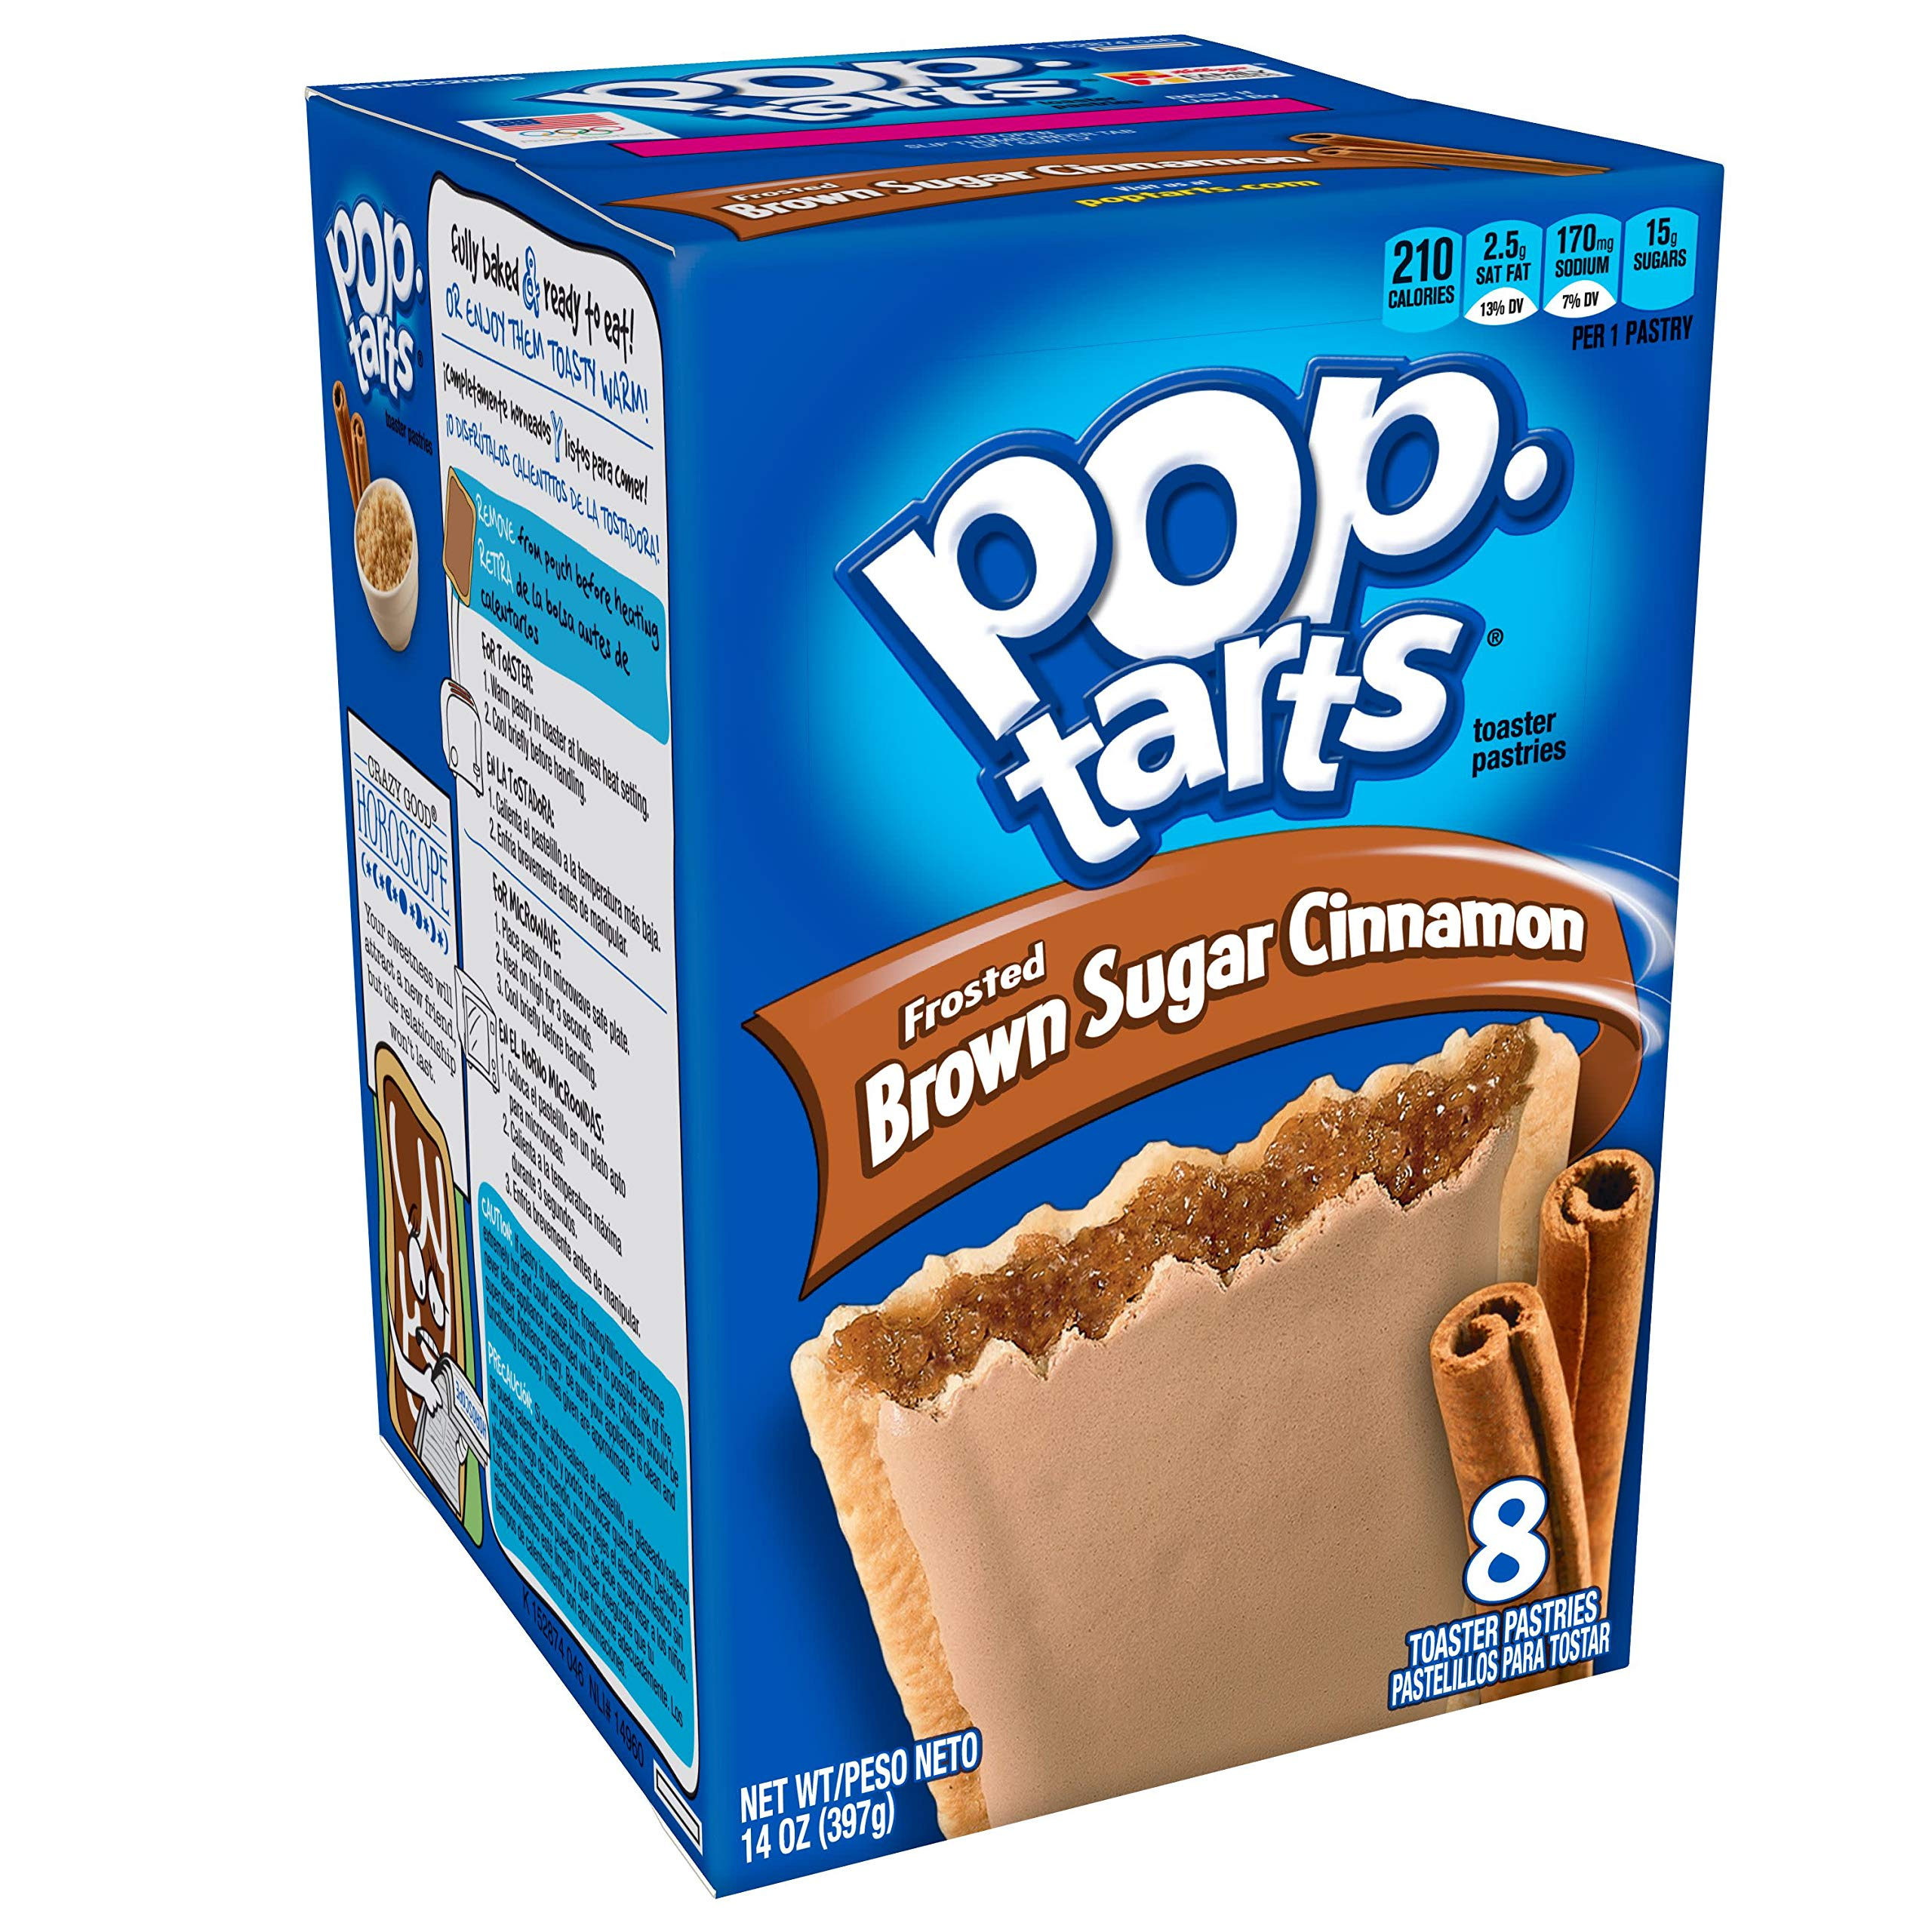 Pop-Tarts Breakfast Toaster Pastries, Frosted Brown Sugar Cinnamon Flavored, 14 oz (8 Count)